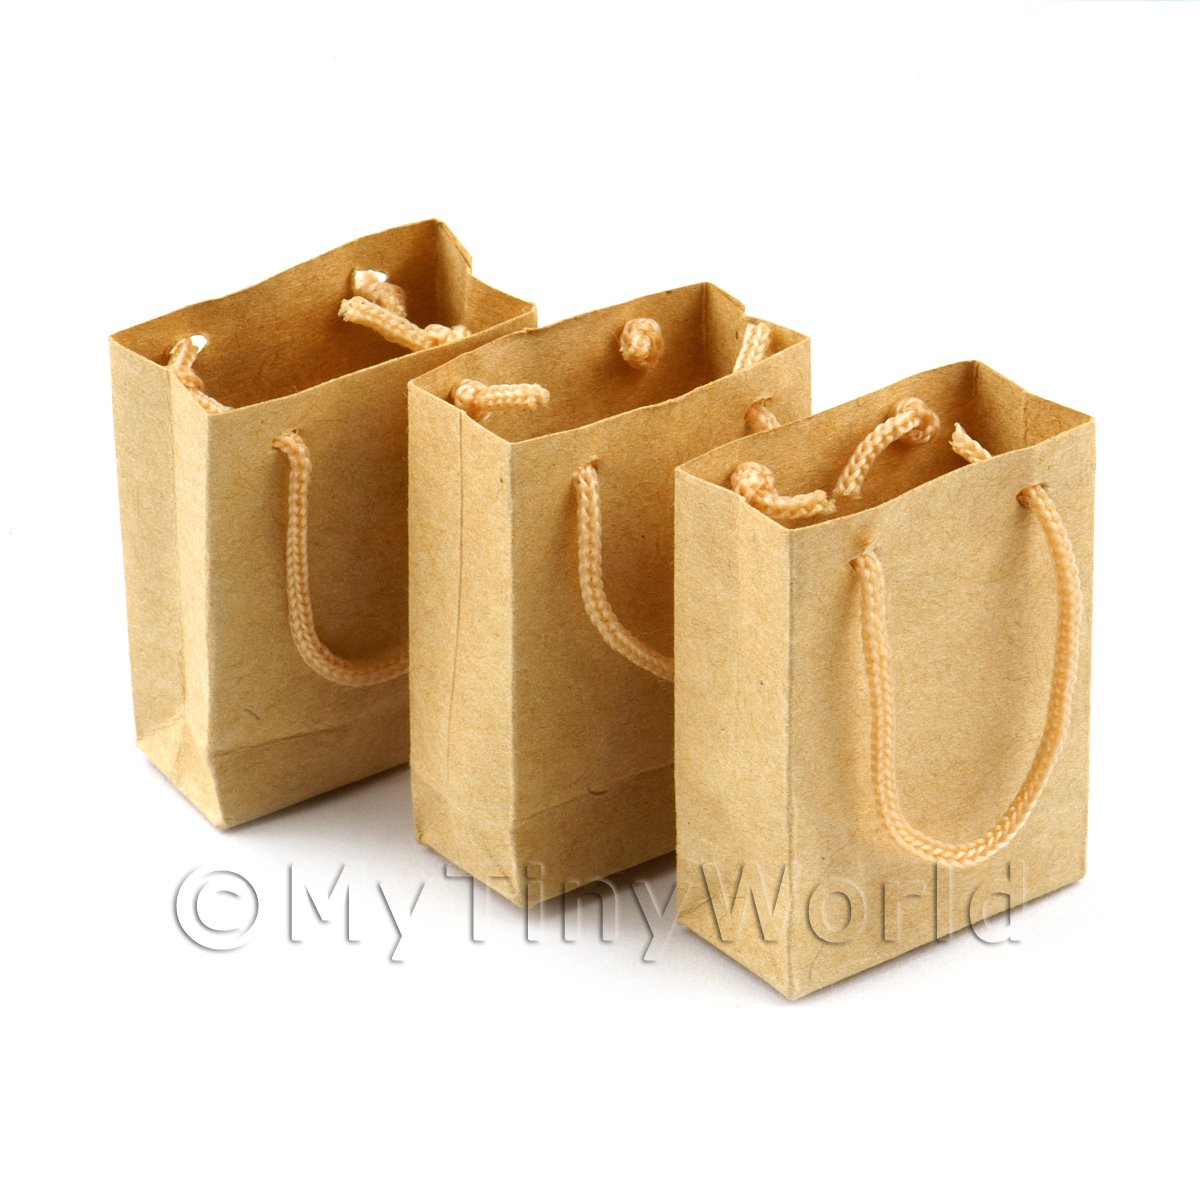 Dolls House Miniature Set of 3 Handmade Brown Paper Bags